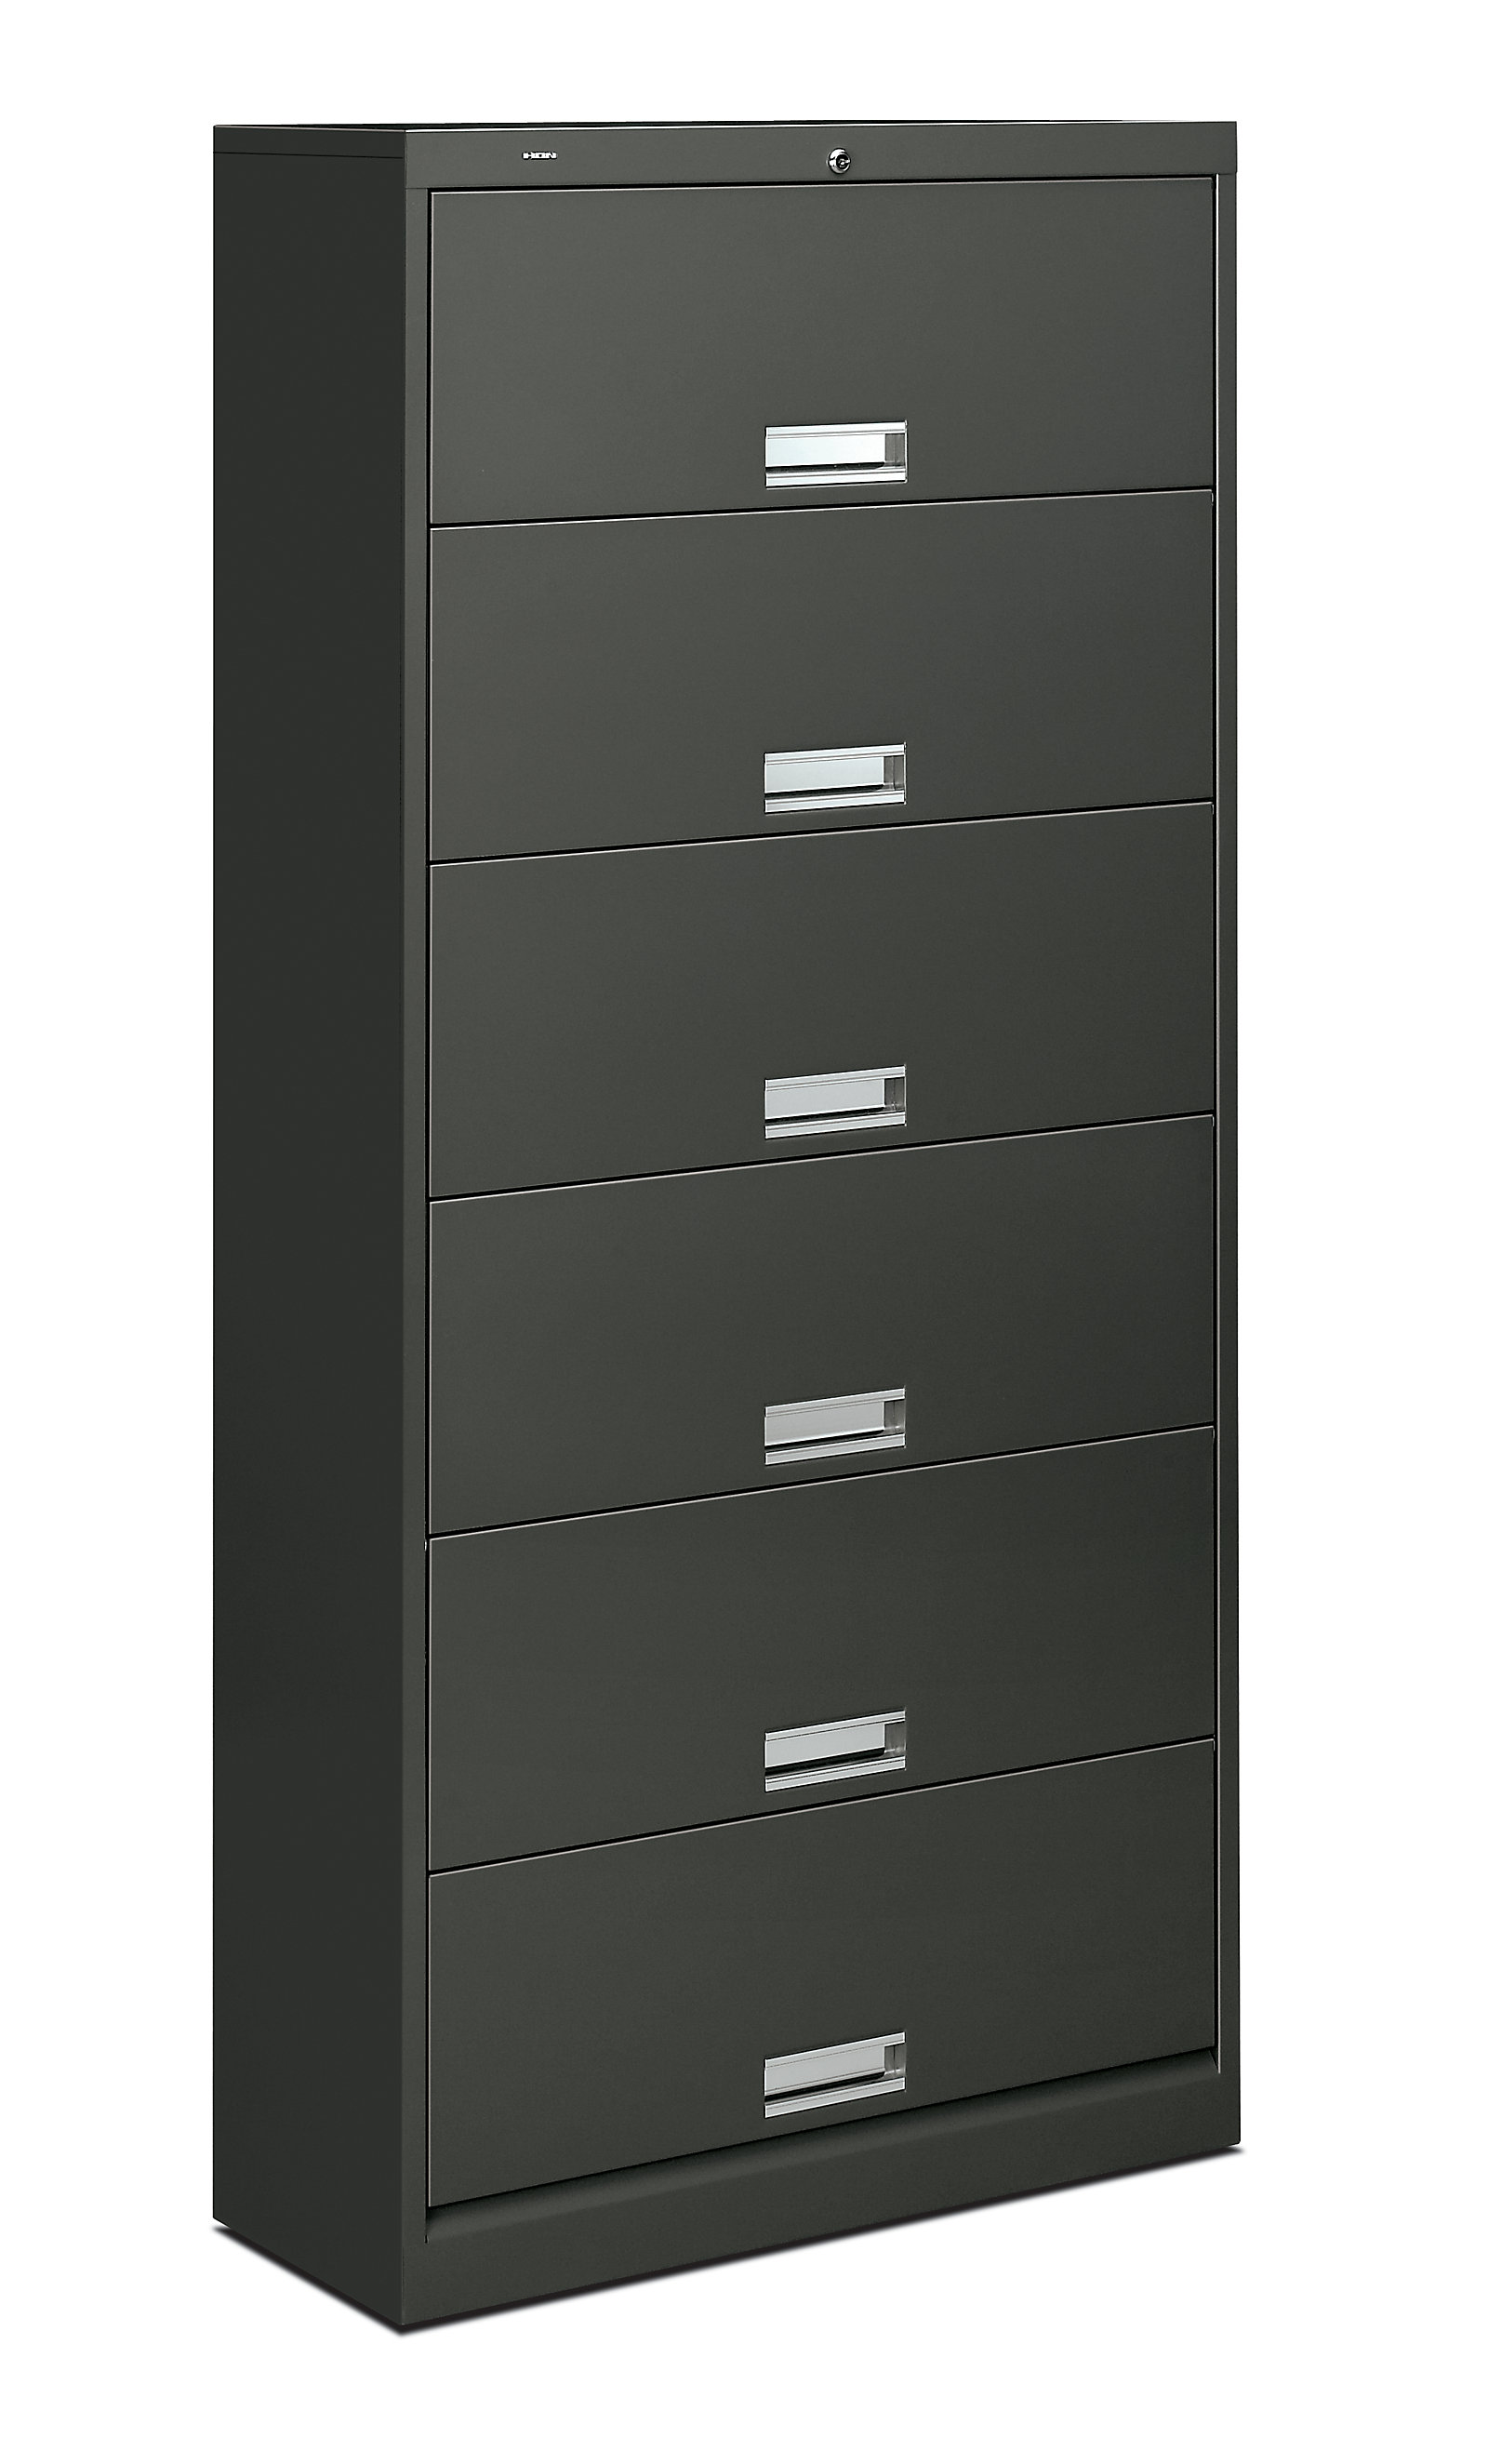 pcr furniture hon reviews fully martin office rated black cabinets drawer image file tribeca cabinet helpful best product customer lateral in loft assembled